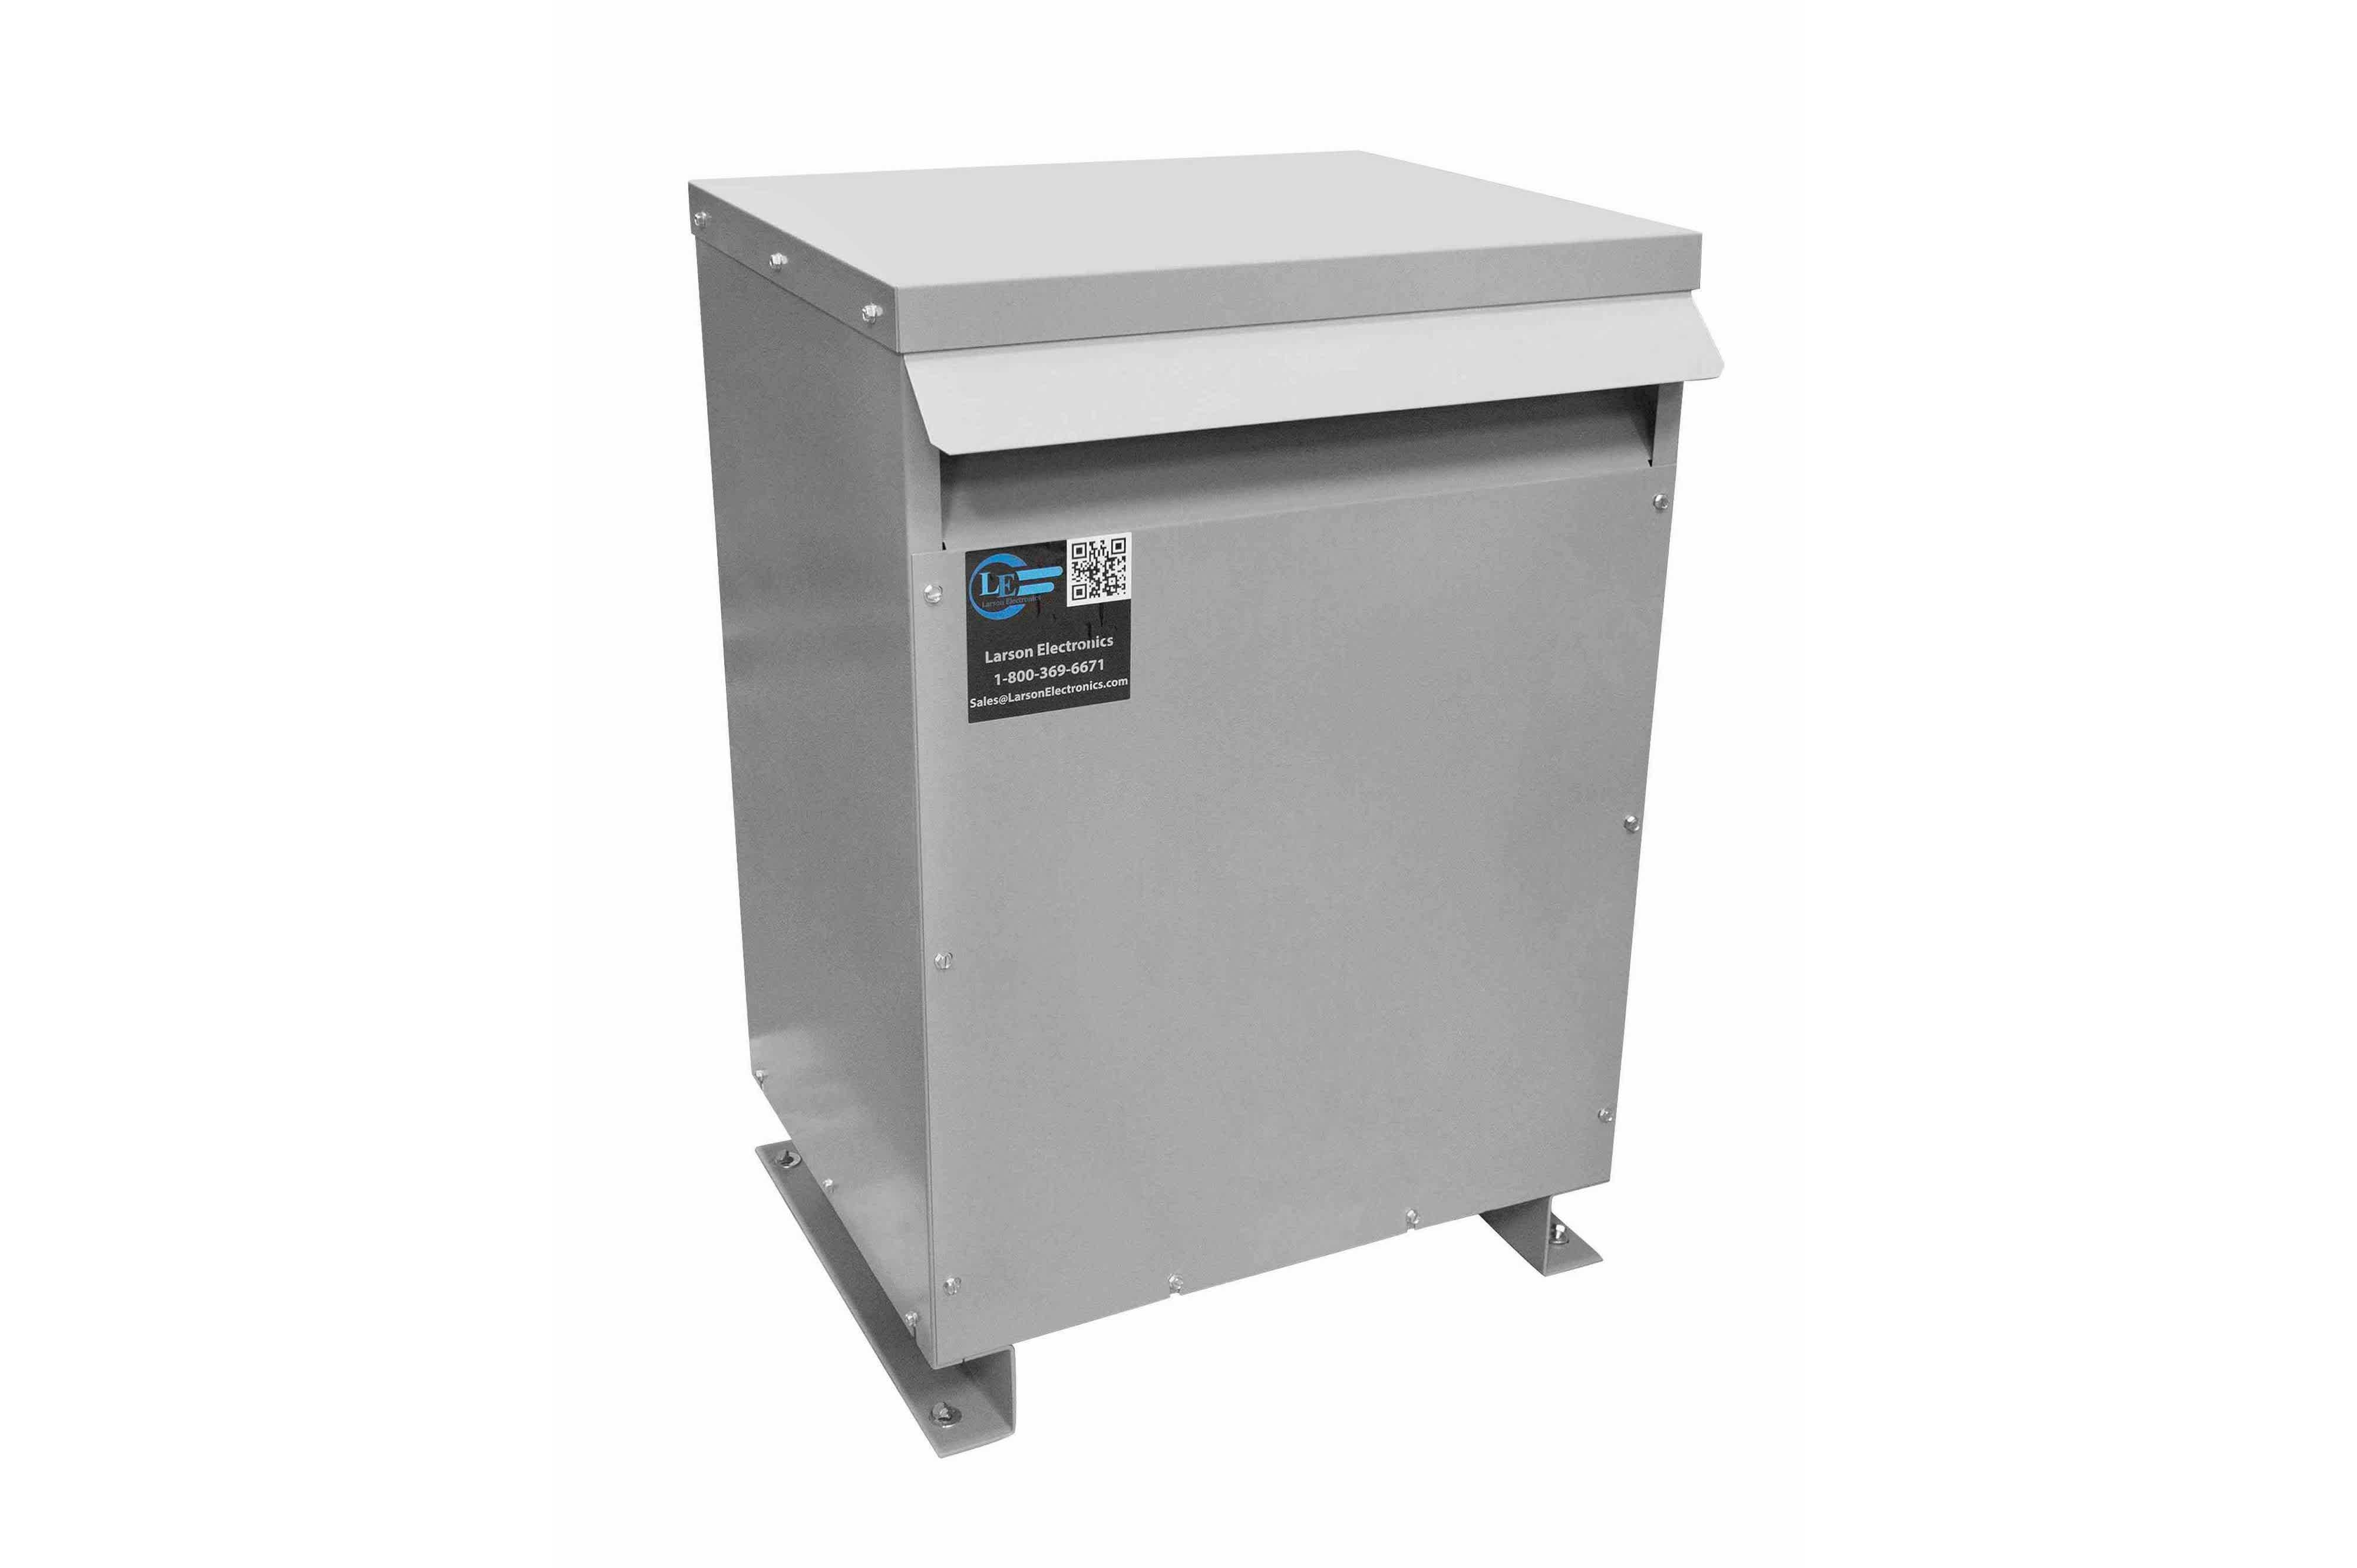 137.5 kVA 3PH Isolation Transformer, 480V Delta Primary, 240 Delta Secondary, N3R, Ventilated, 60 Hz